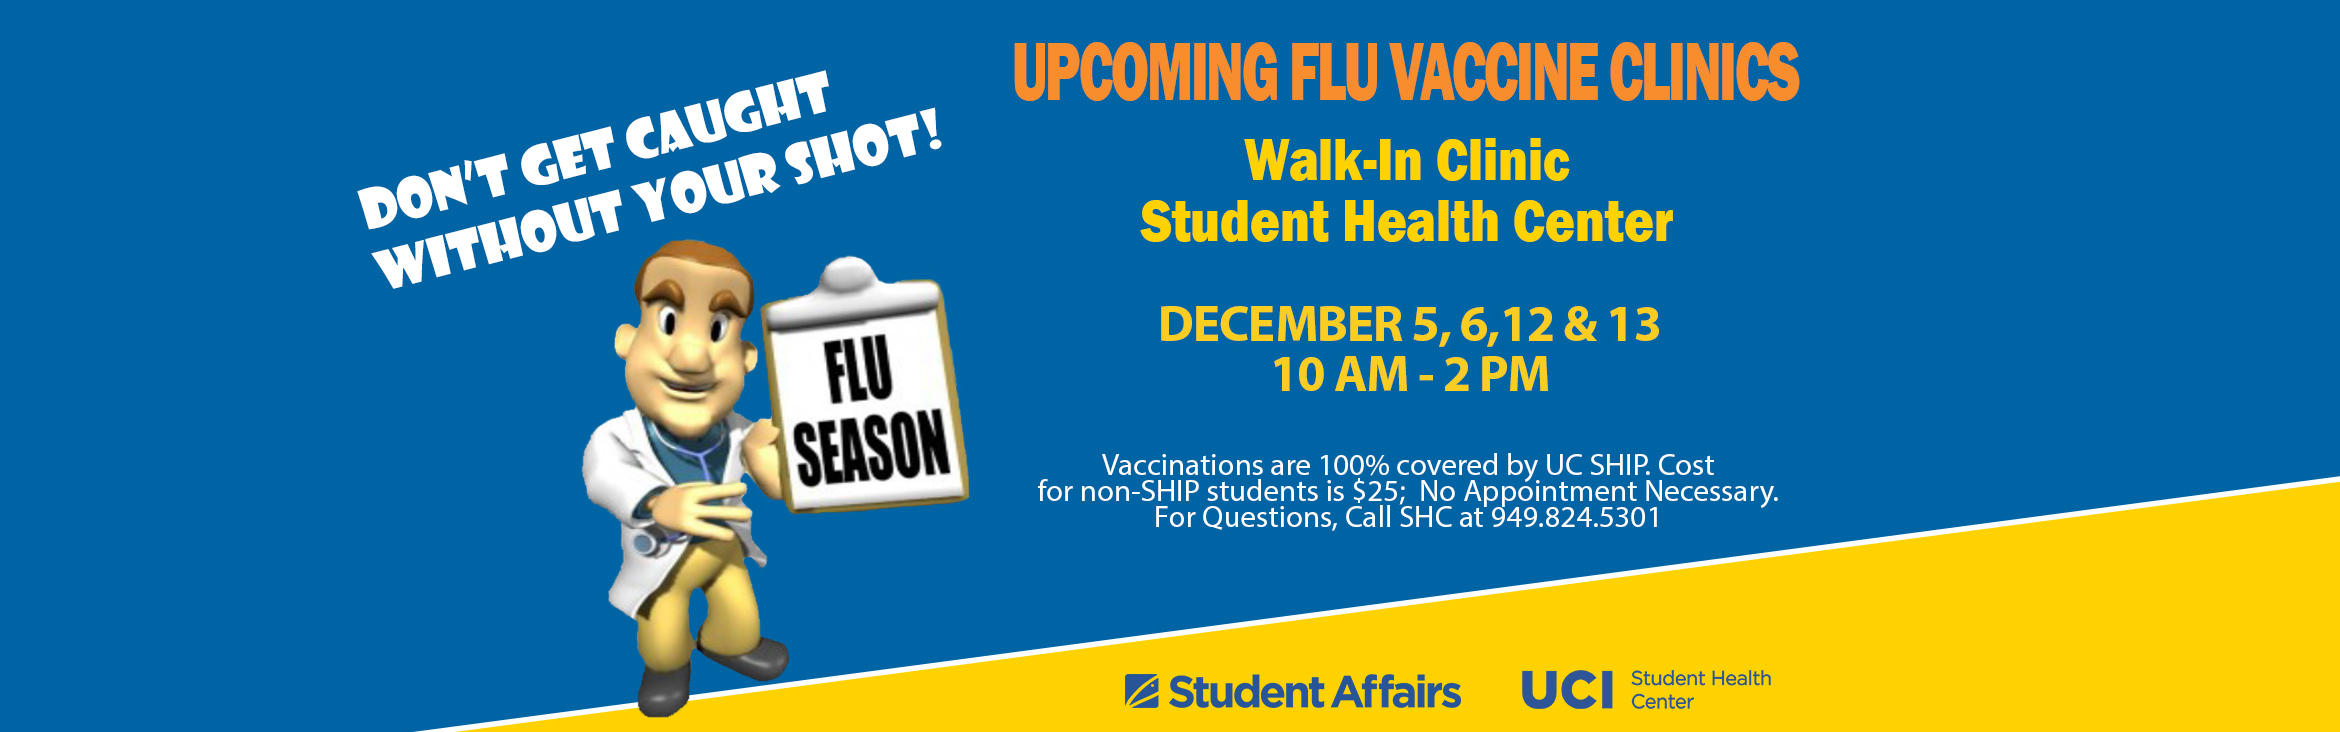 Don't Get Caught Without Your Shot! Upcoming Flu Vaccine Clinics, Walk-in Clinic Student Health Center, December 5,6,12 &13, 10 AM - 2 Pm